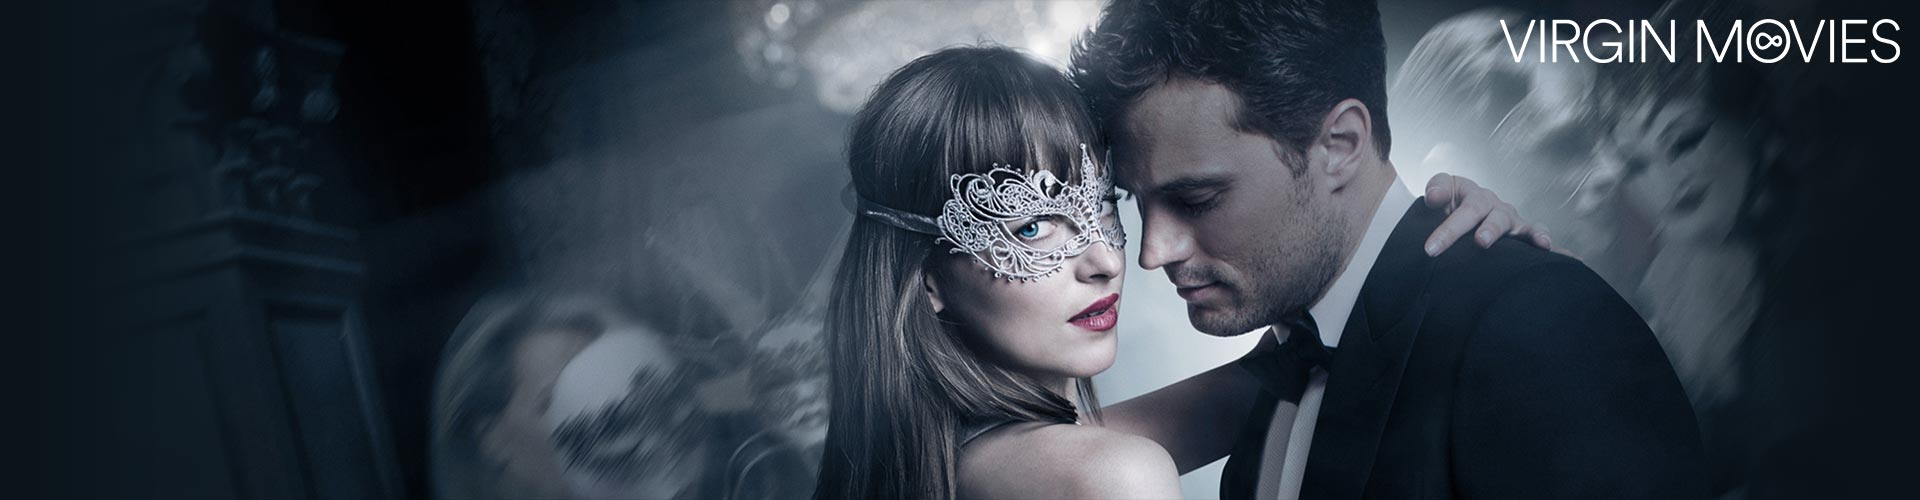 Fifty Shades Darker – available now on Virgin Movies